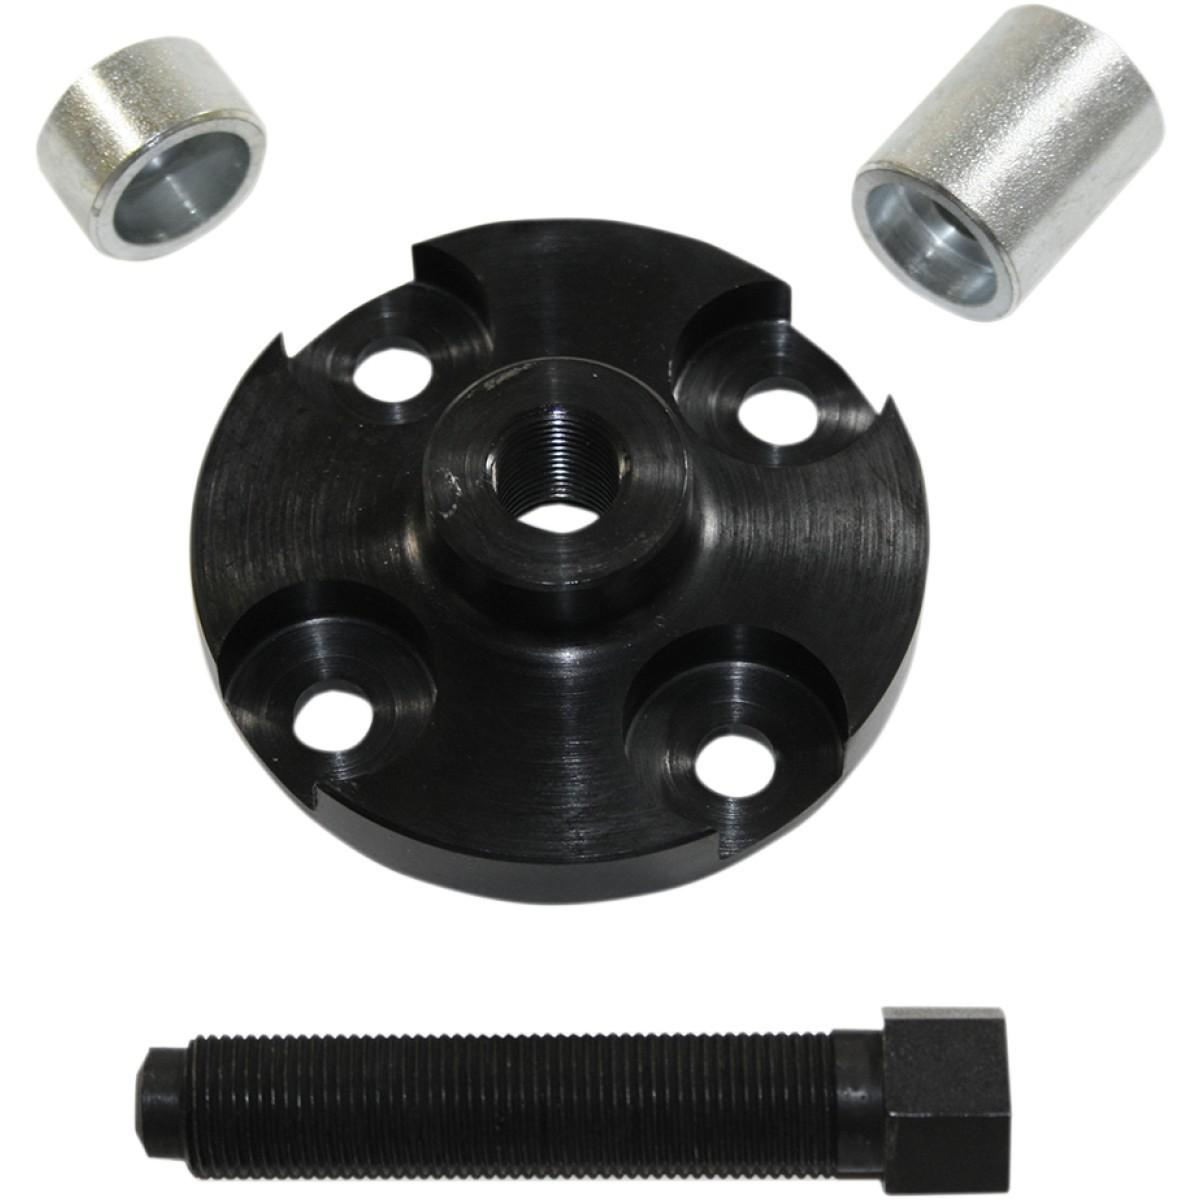 Rivera Primo Tapered Shaft Hub Puller For Spring-Style Clutches - 1062-0003